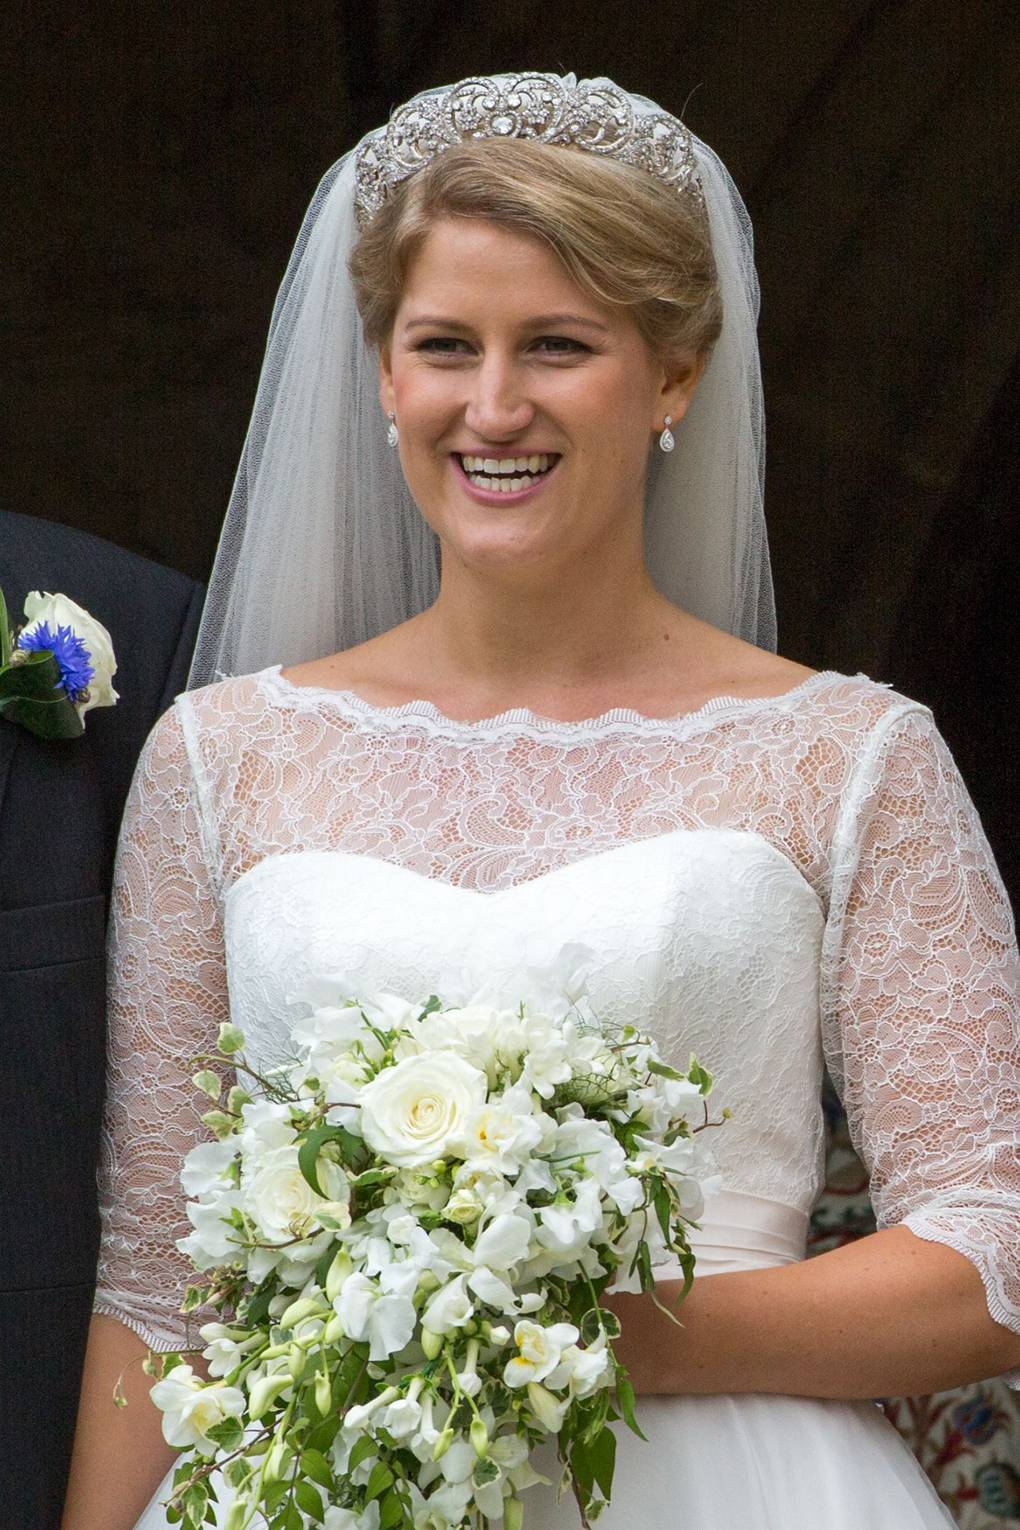 princess s diana s wedding day tiara details tatler princess s diana s wedding day tiara